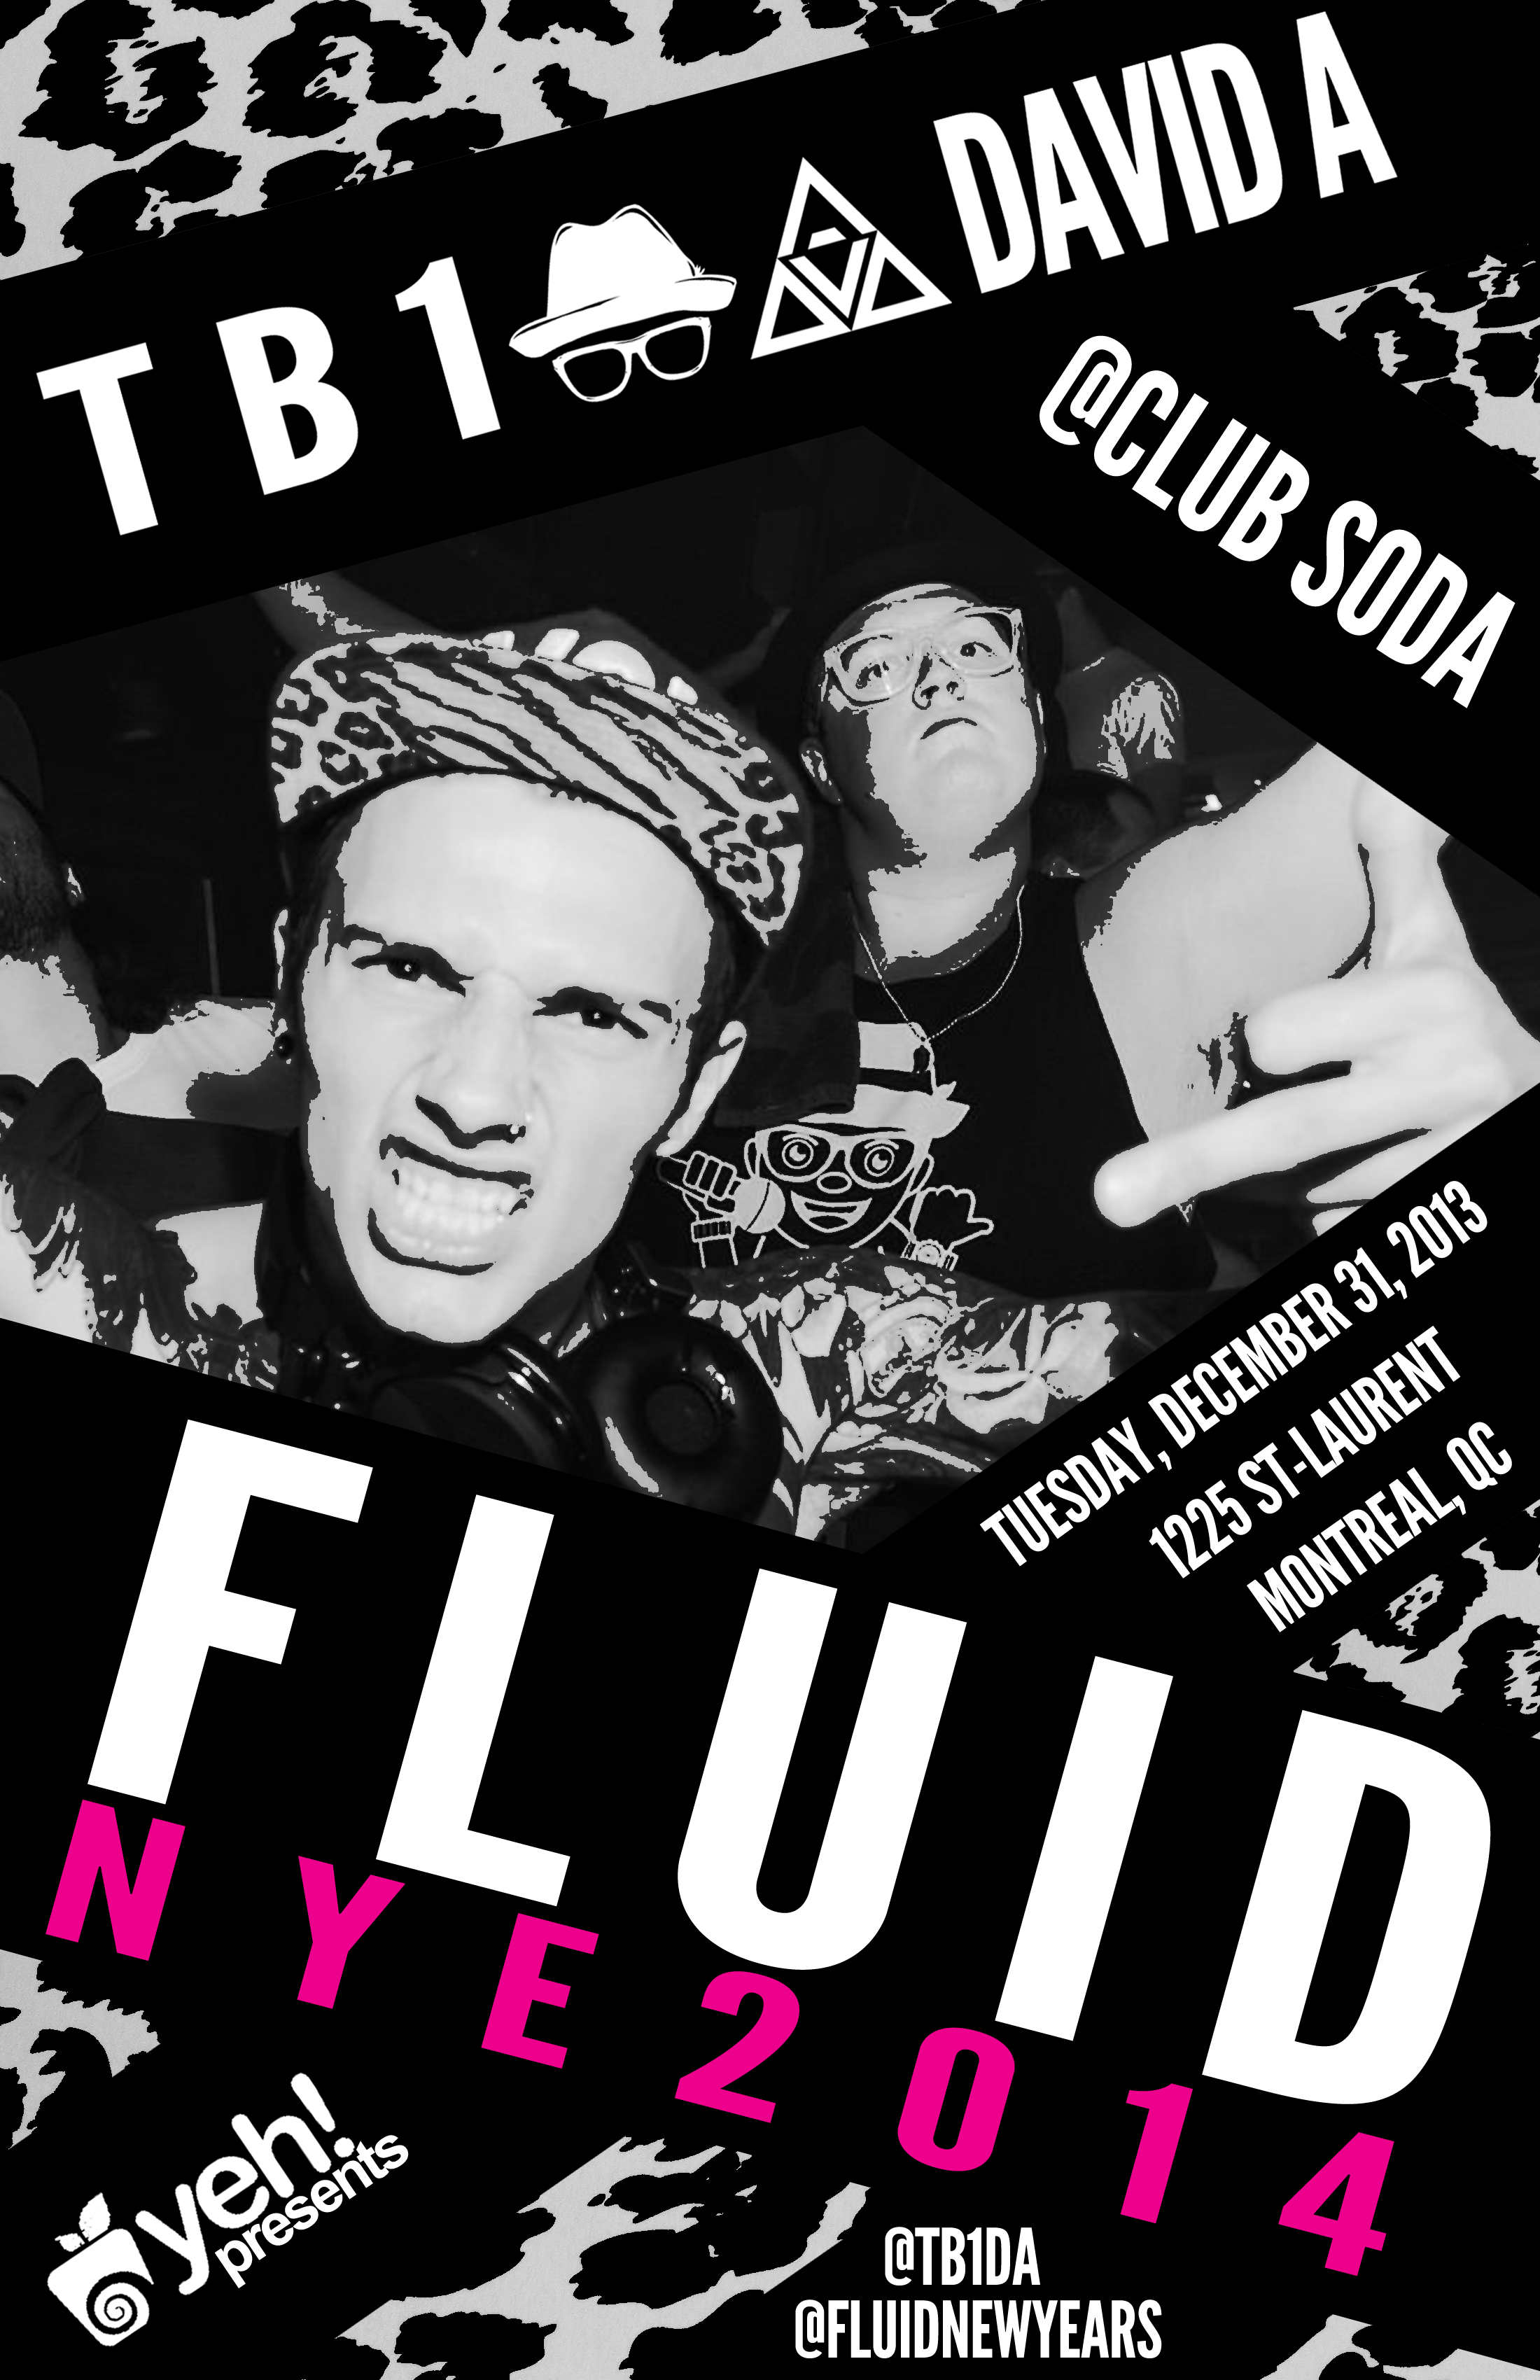 Fluid New Years Eve - TB1 and David A